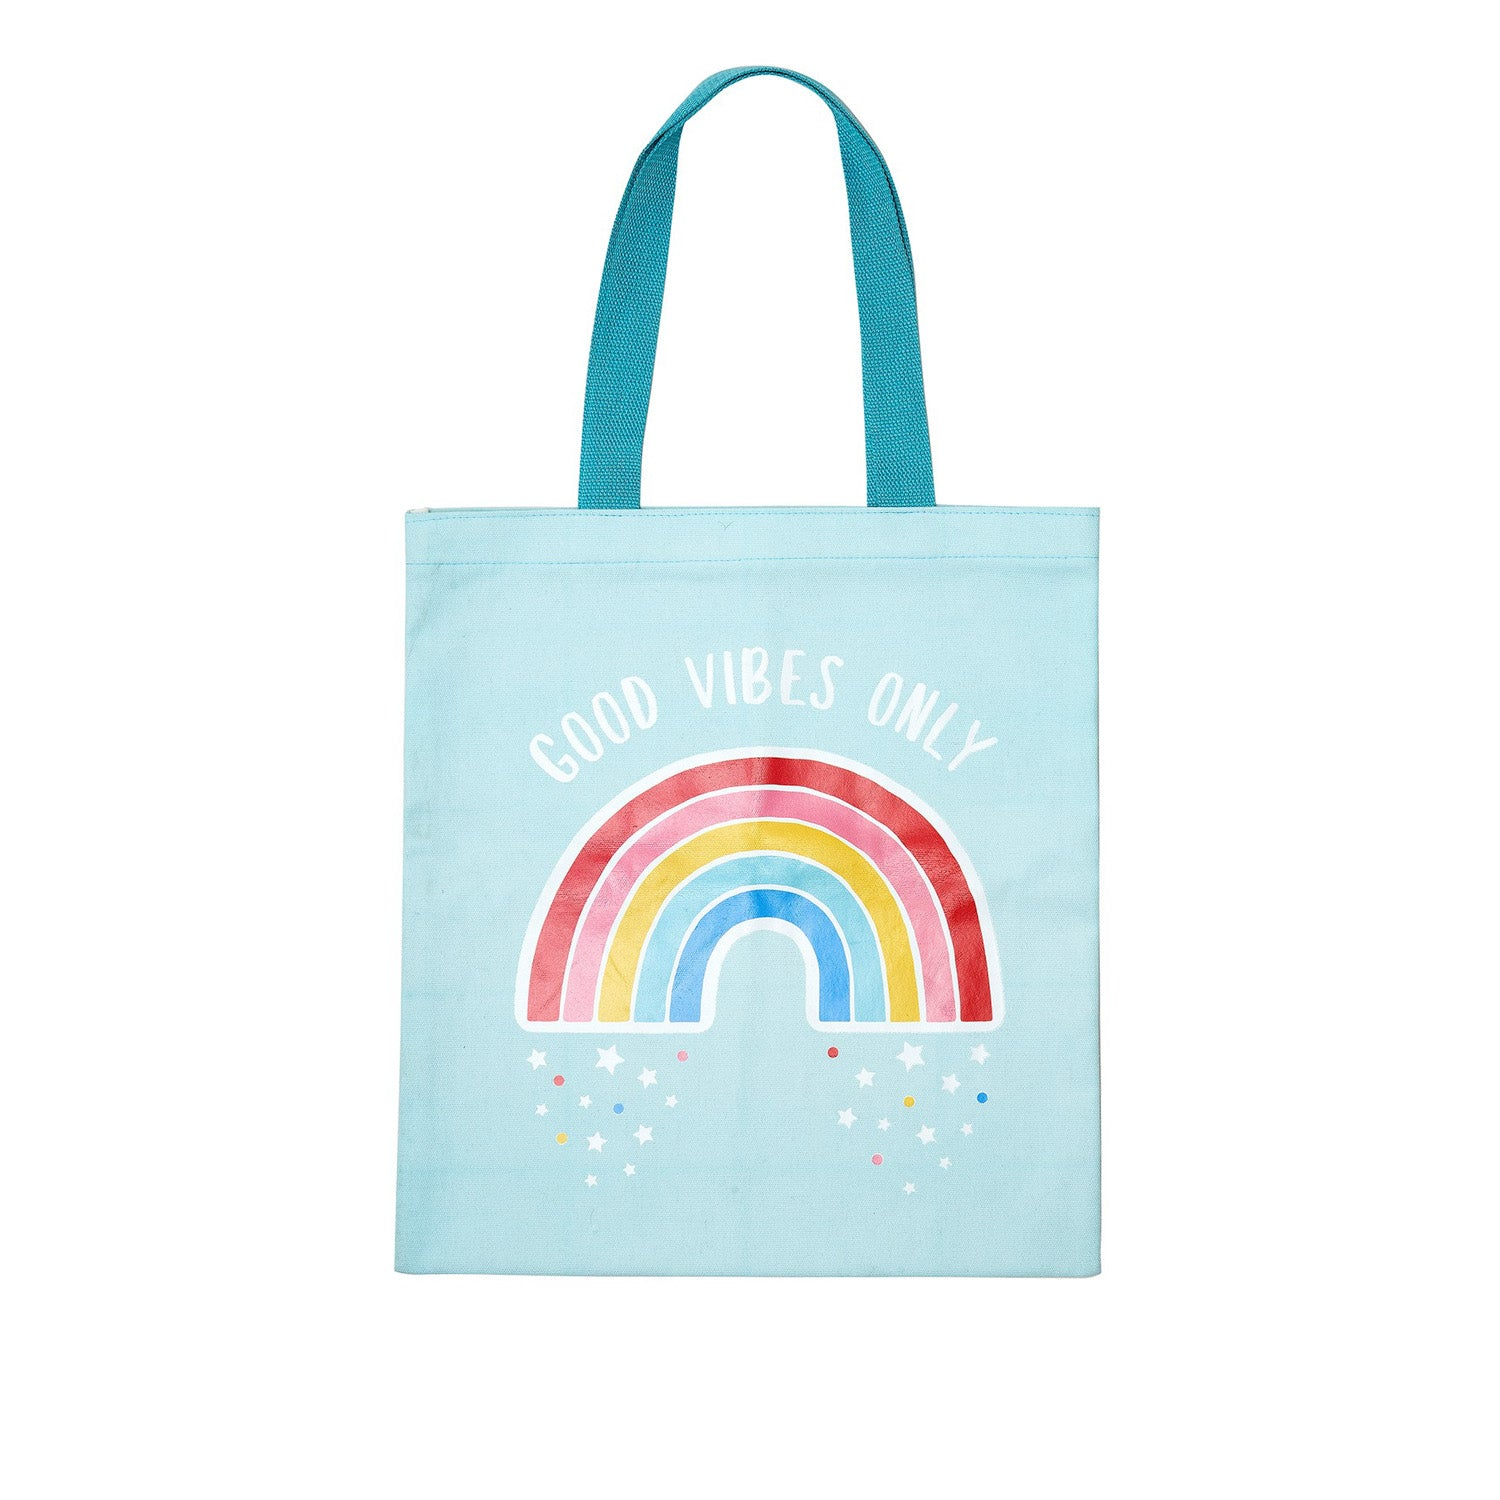 Chasing Rainbows Tote Bag - MissieMay